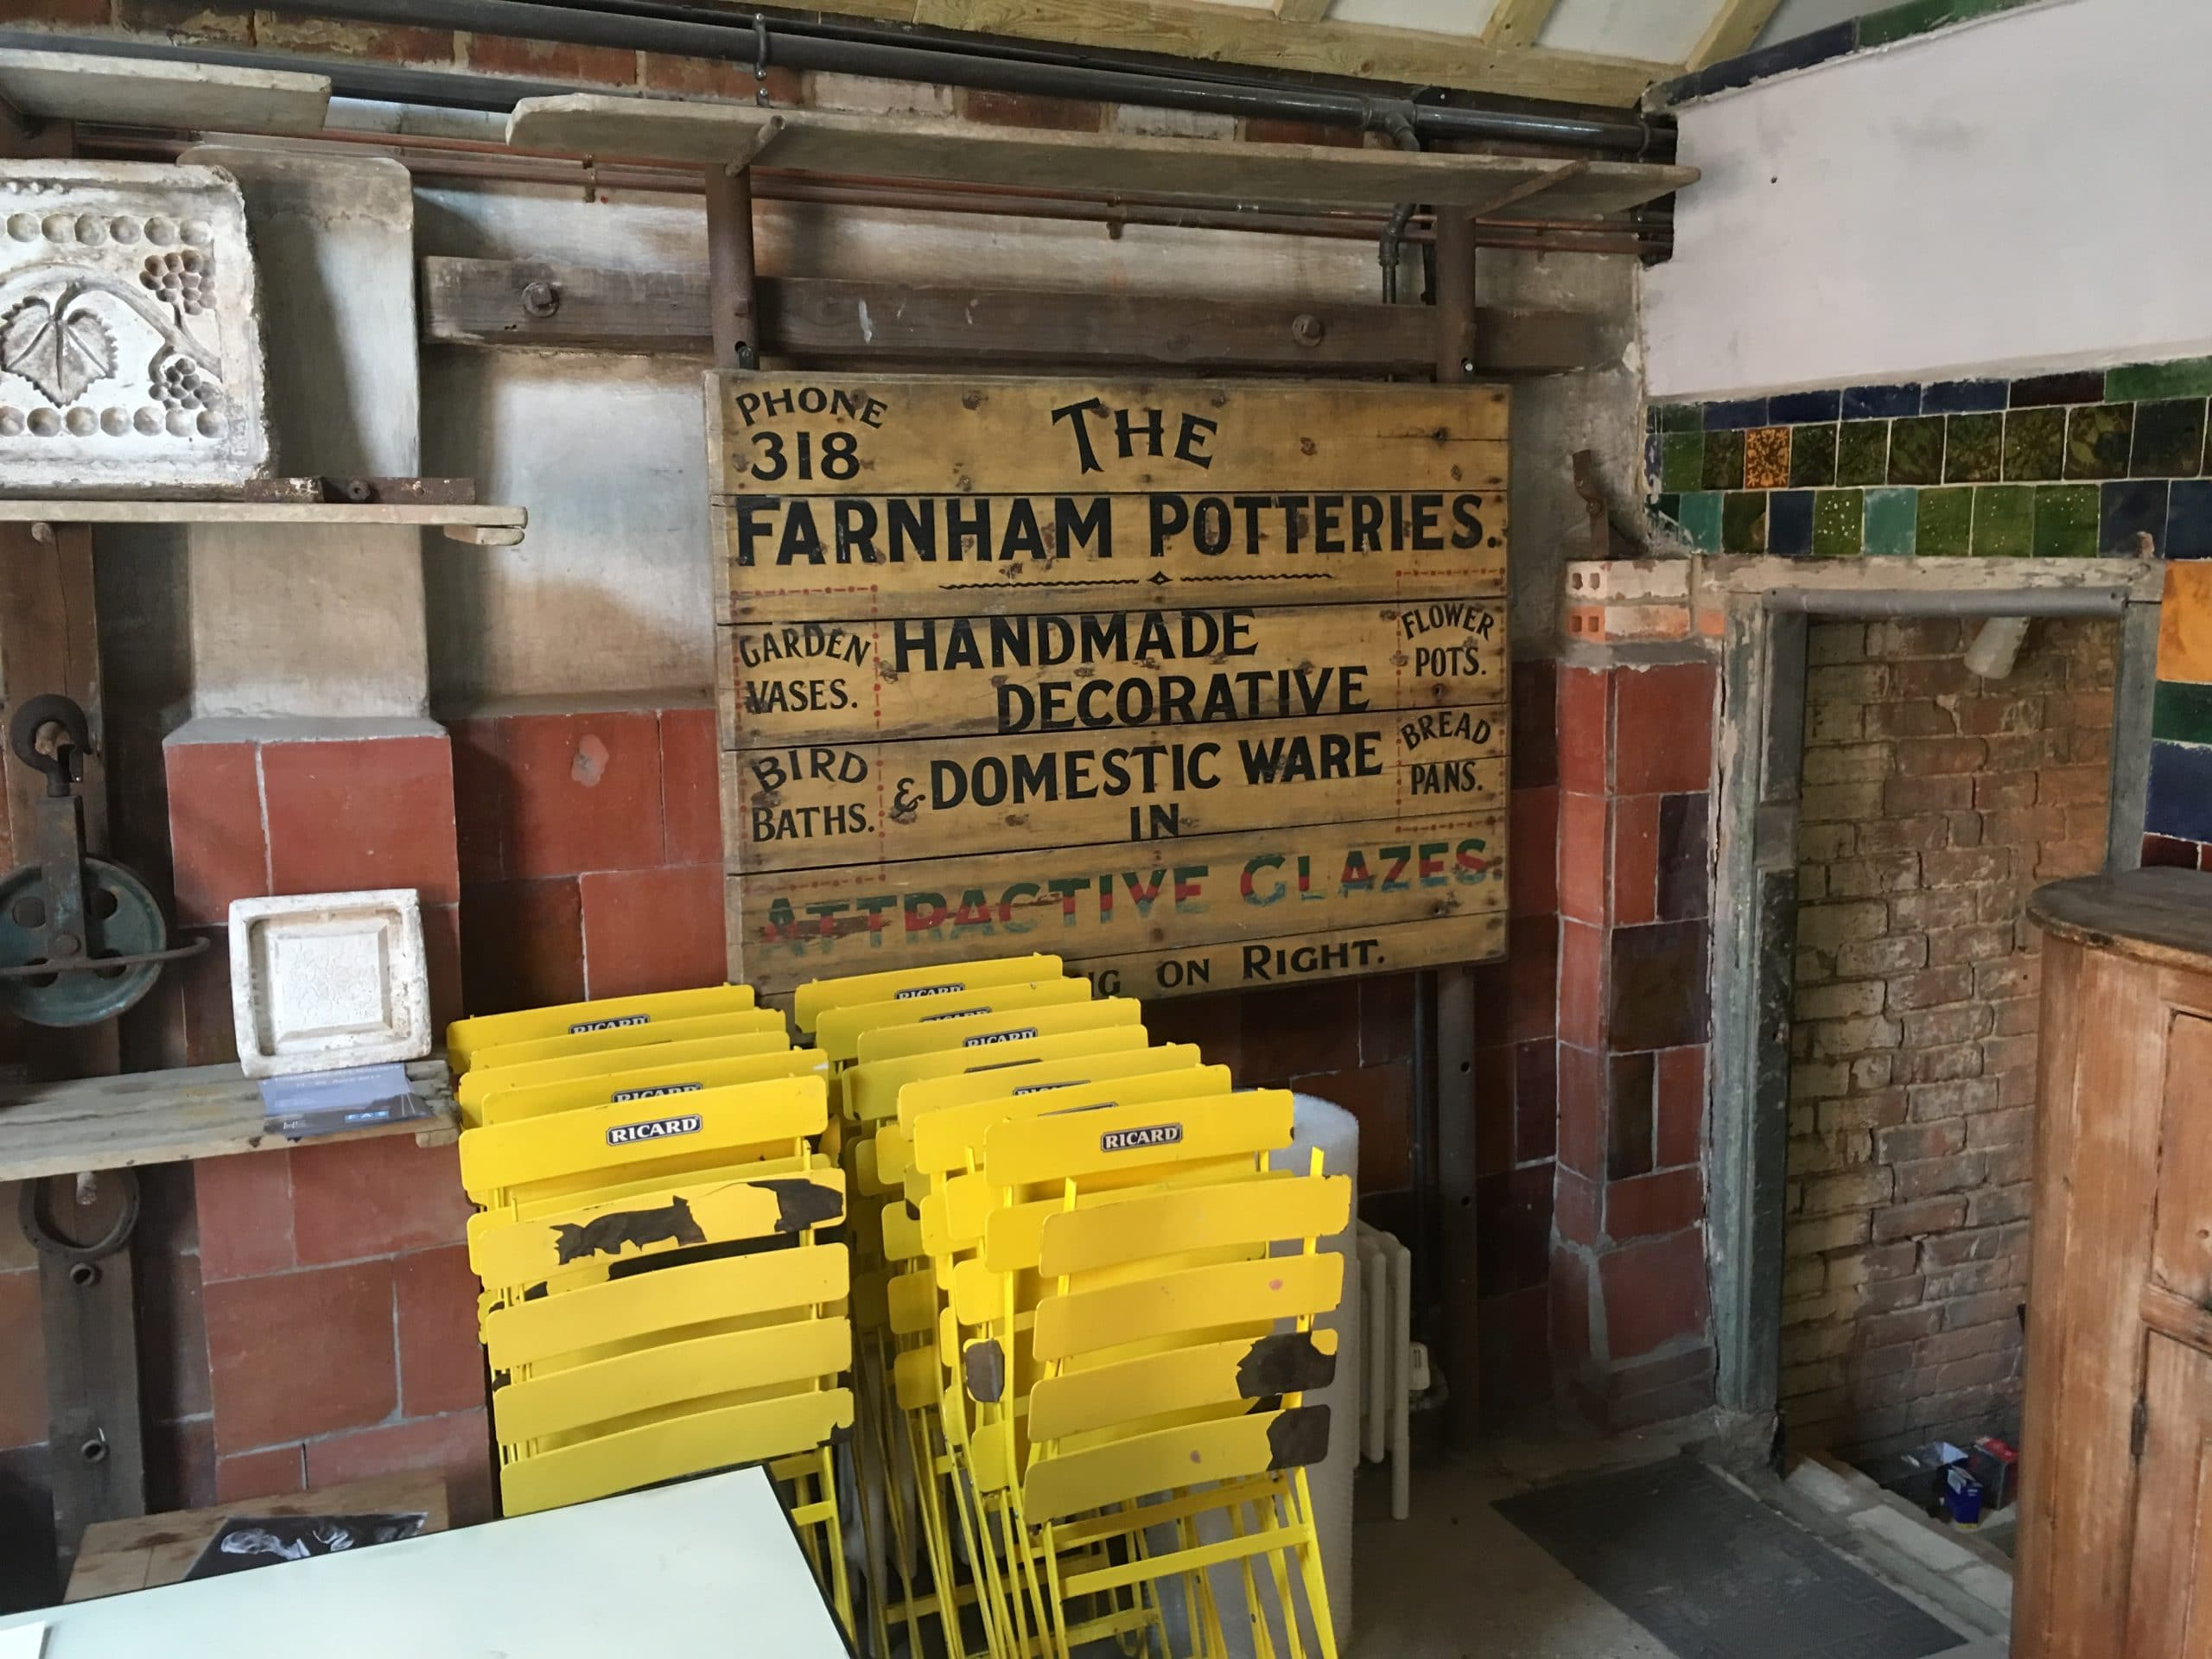 Farnham pottery visit – our story of green glaze